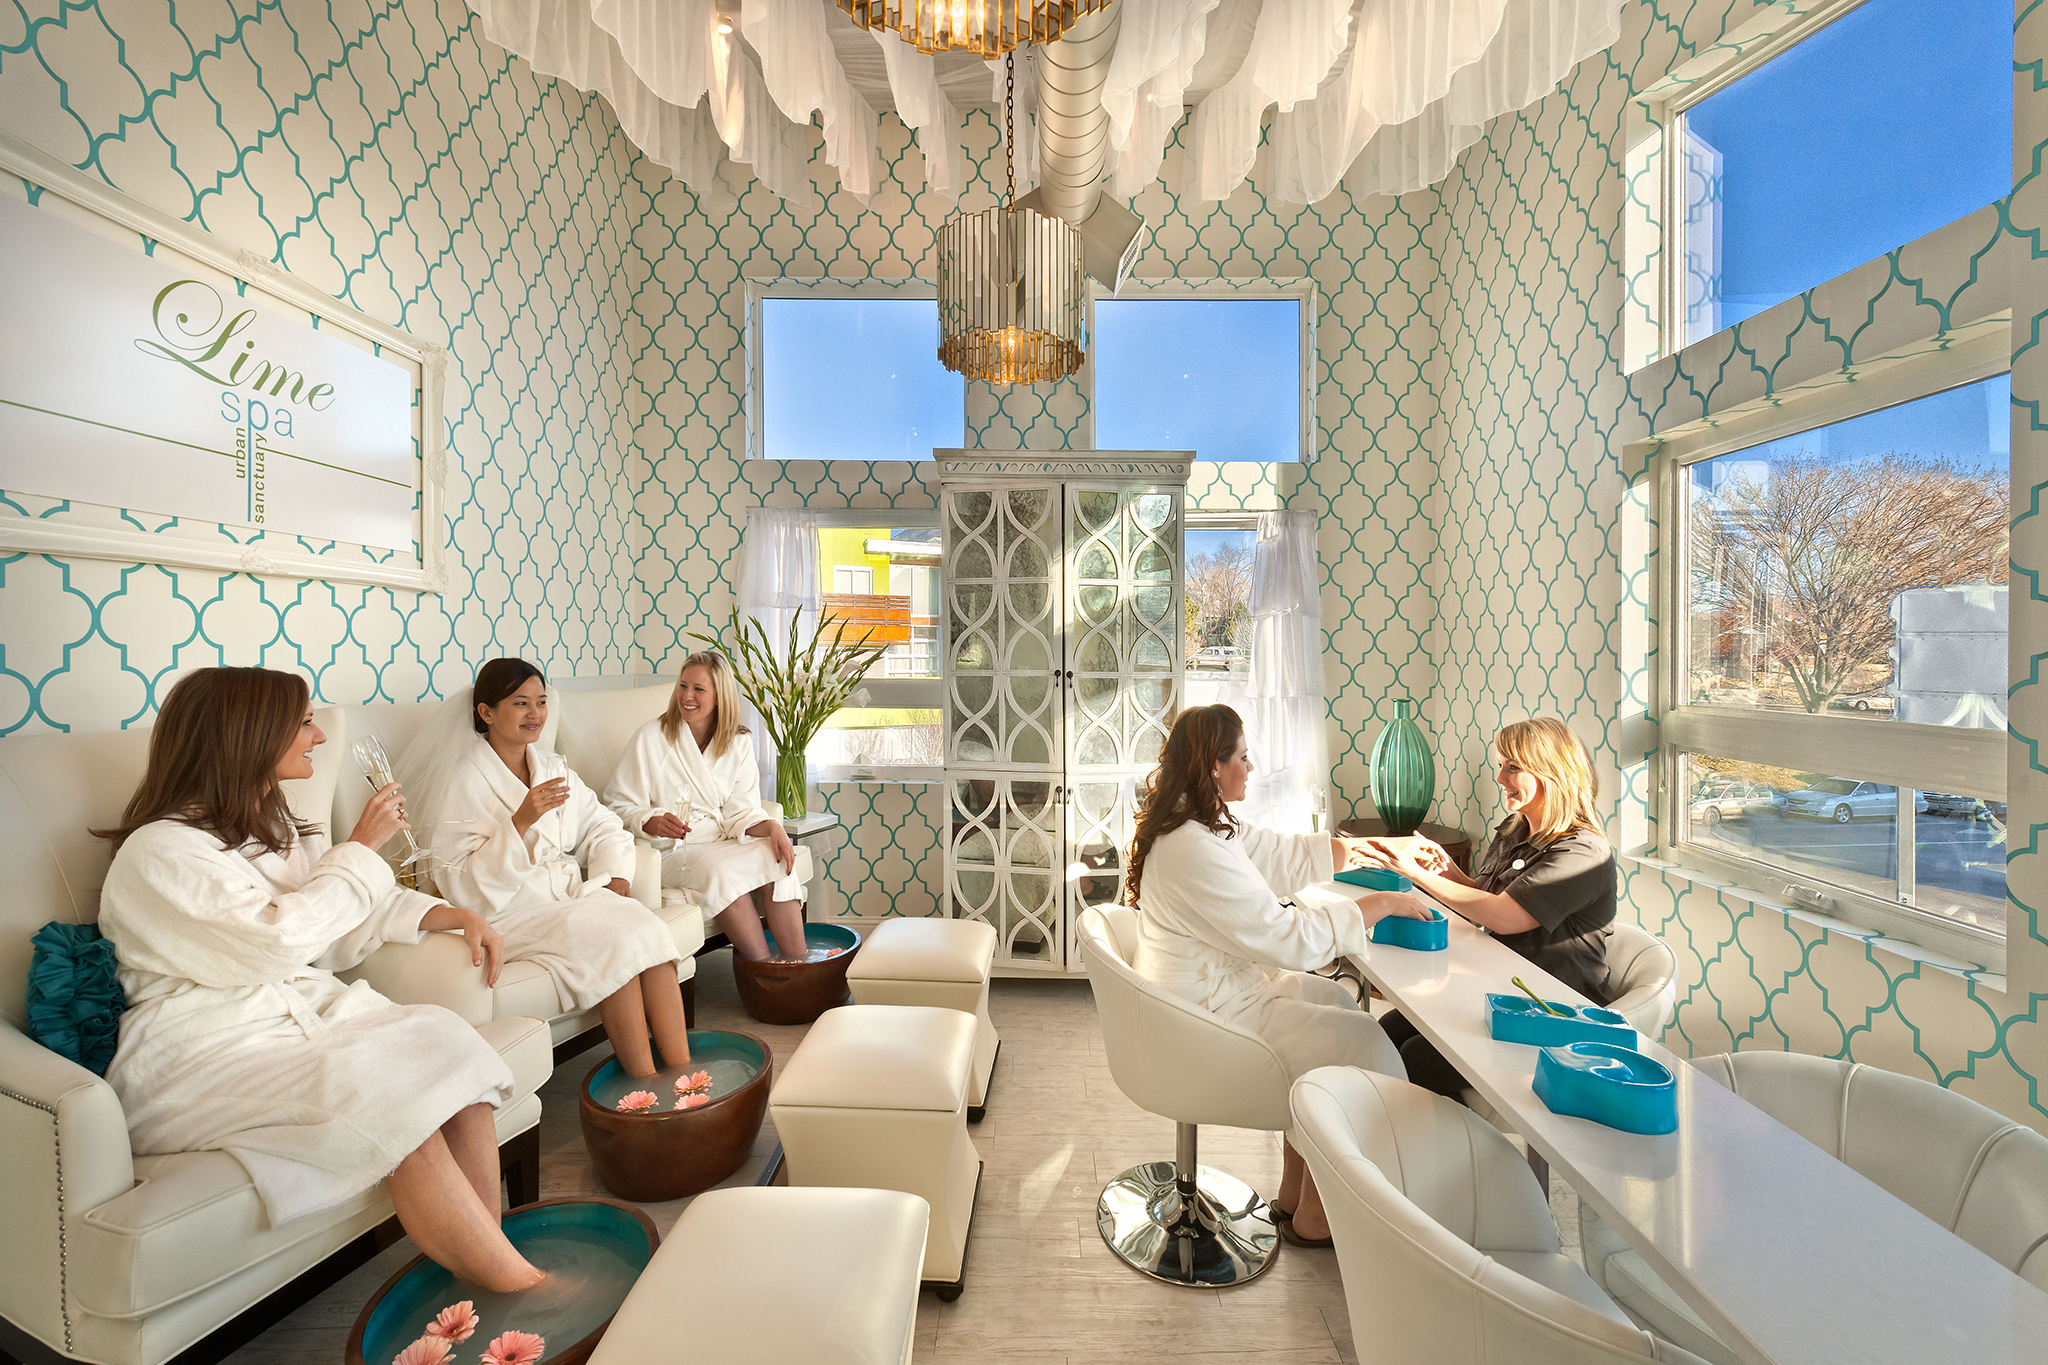 Best day spas and spa resorts in america for Spa services near me